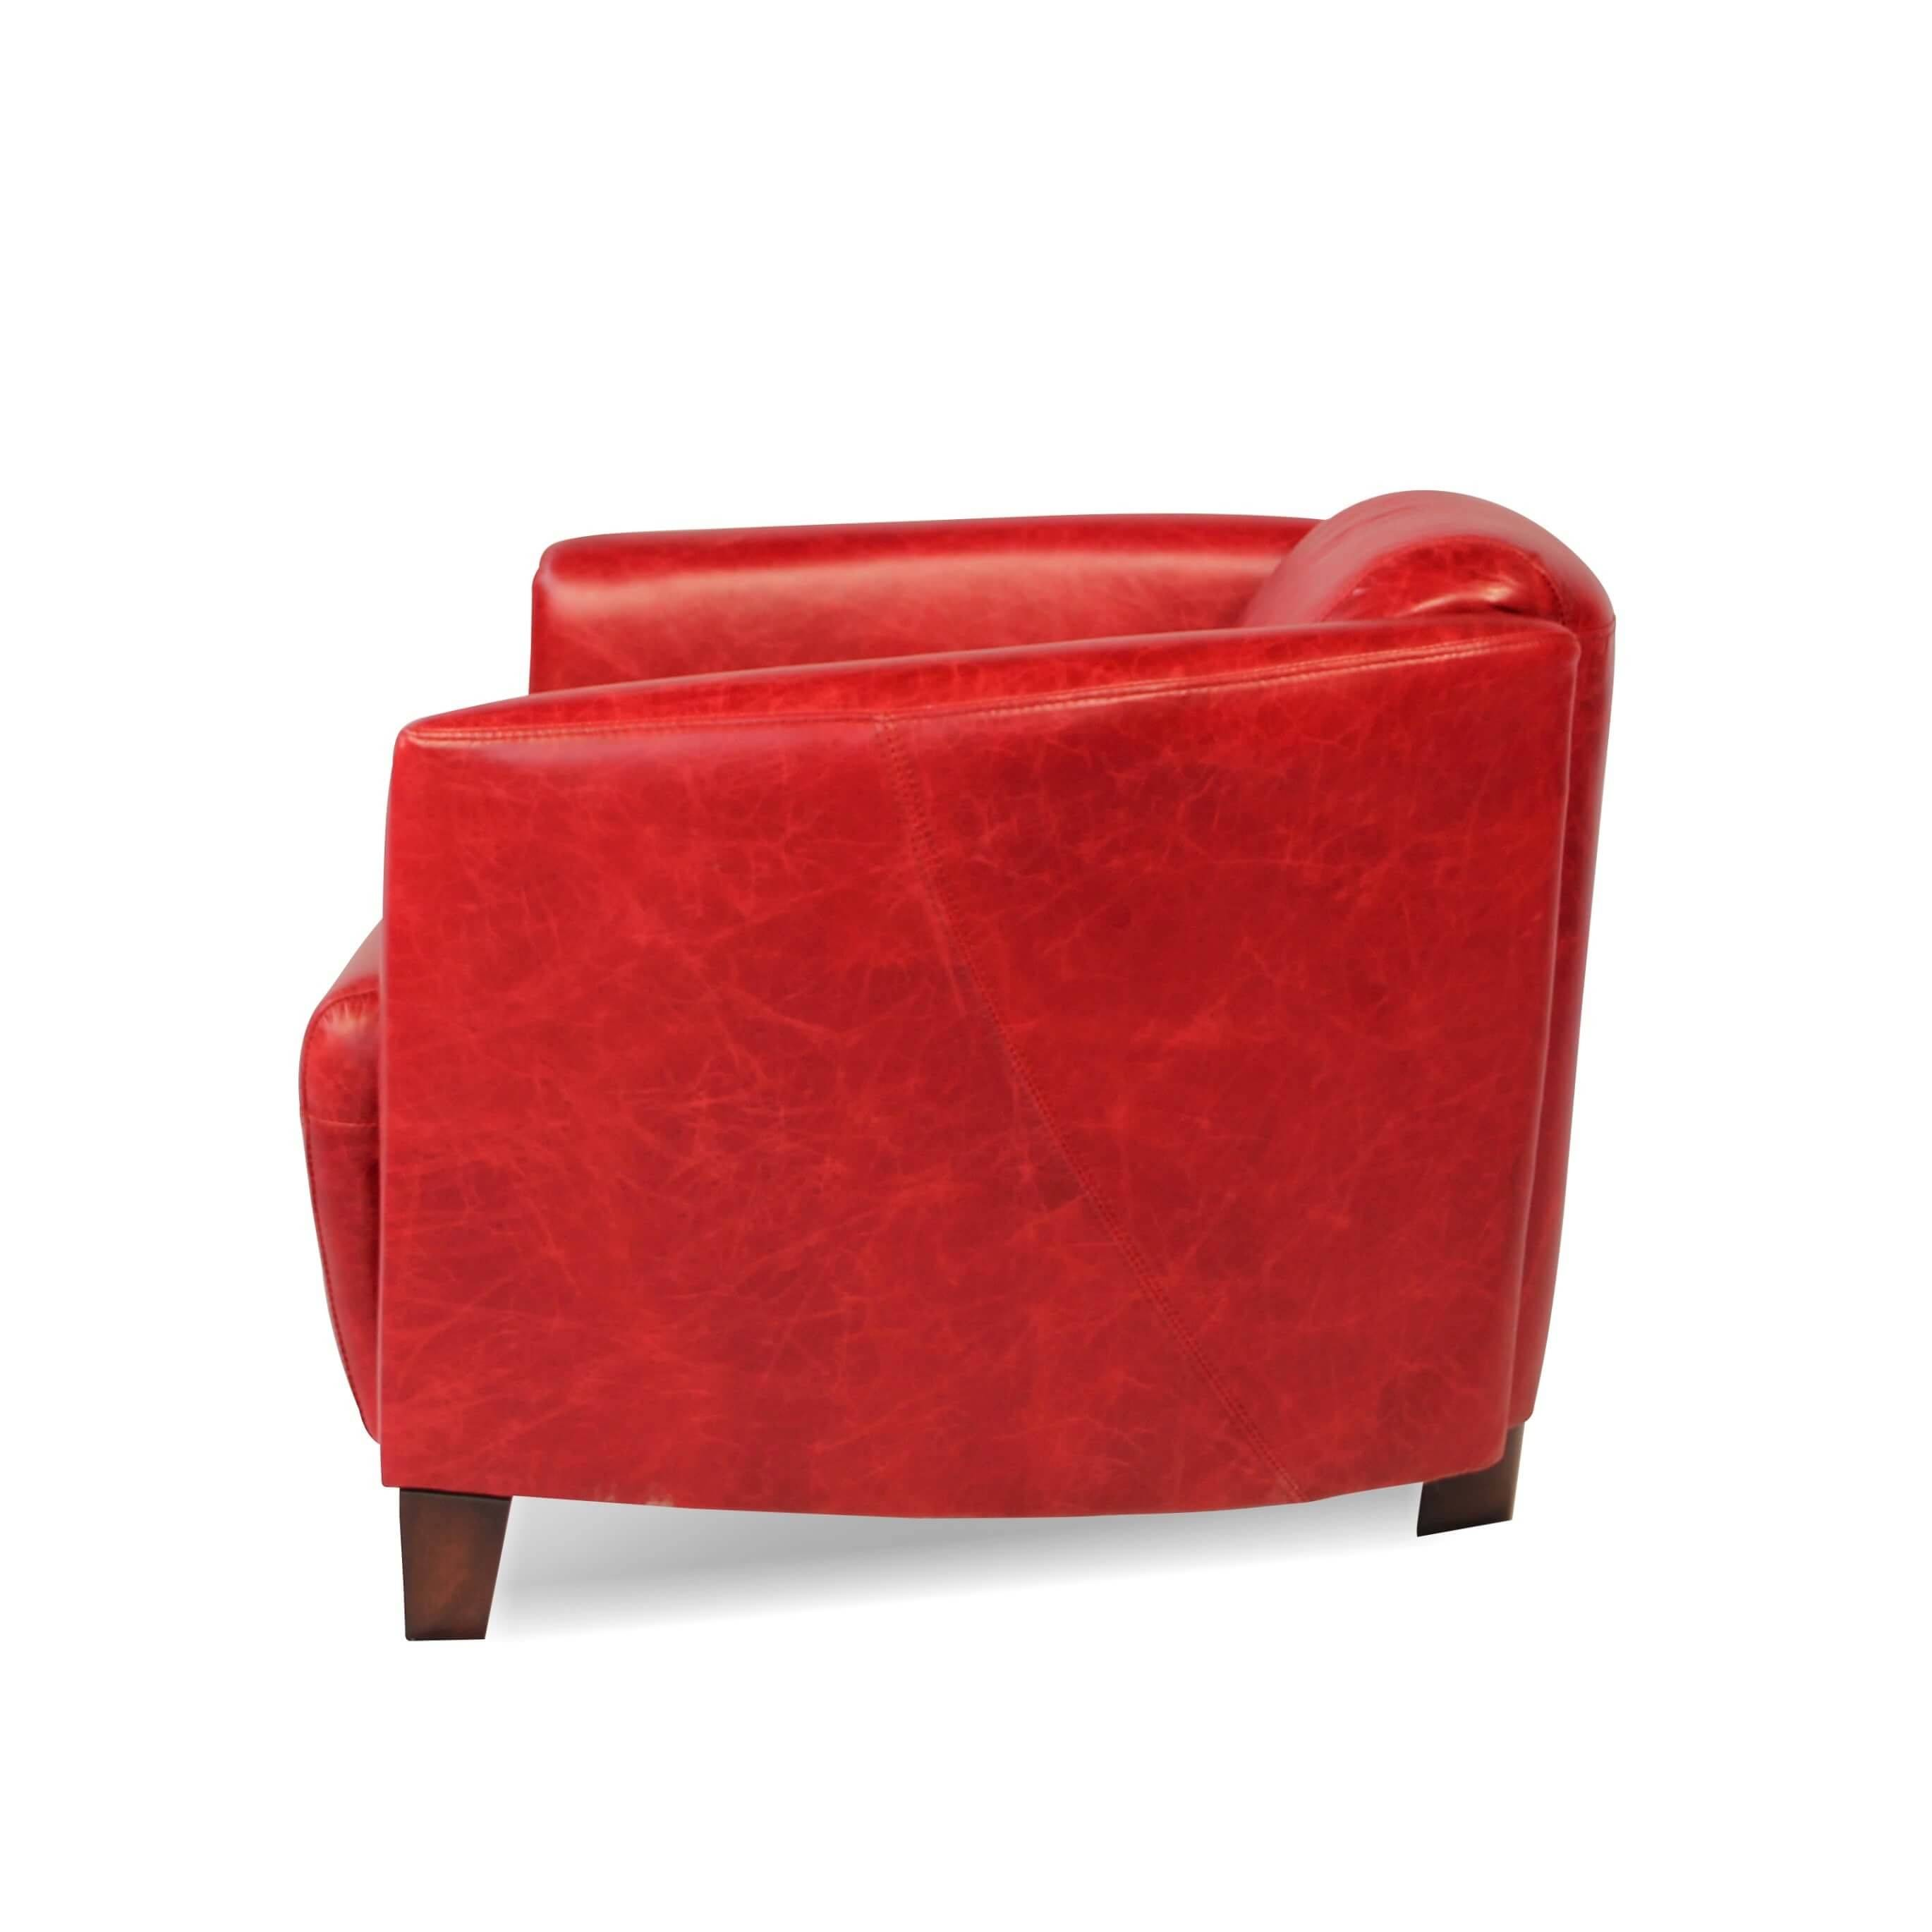 Chesterfield Sofa Leder Chesterfield Rotes Ledersofa Und Zwei Rote Club Sessel